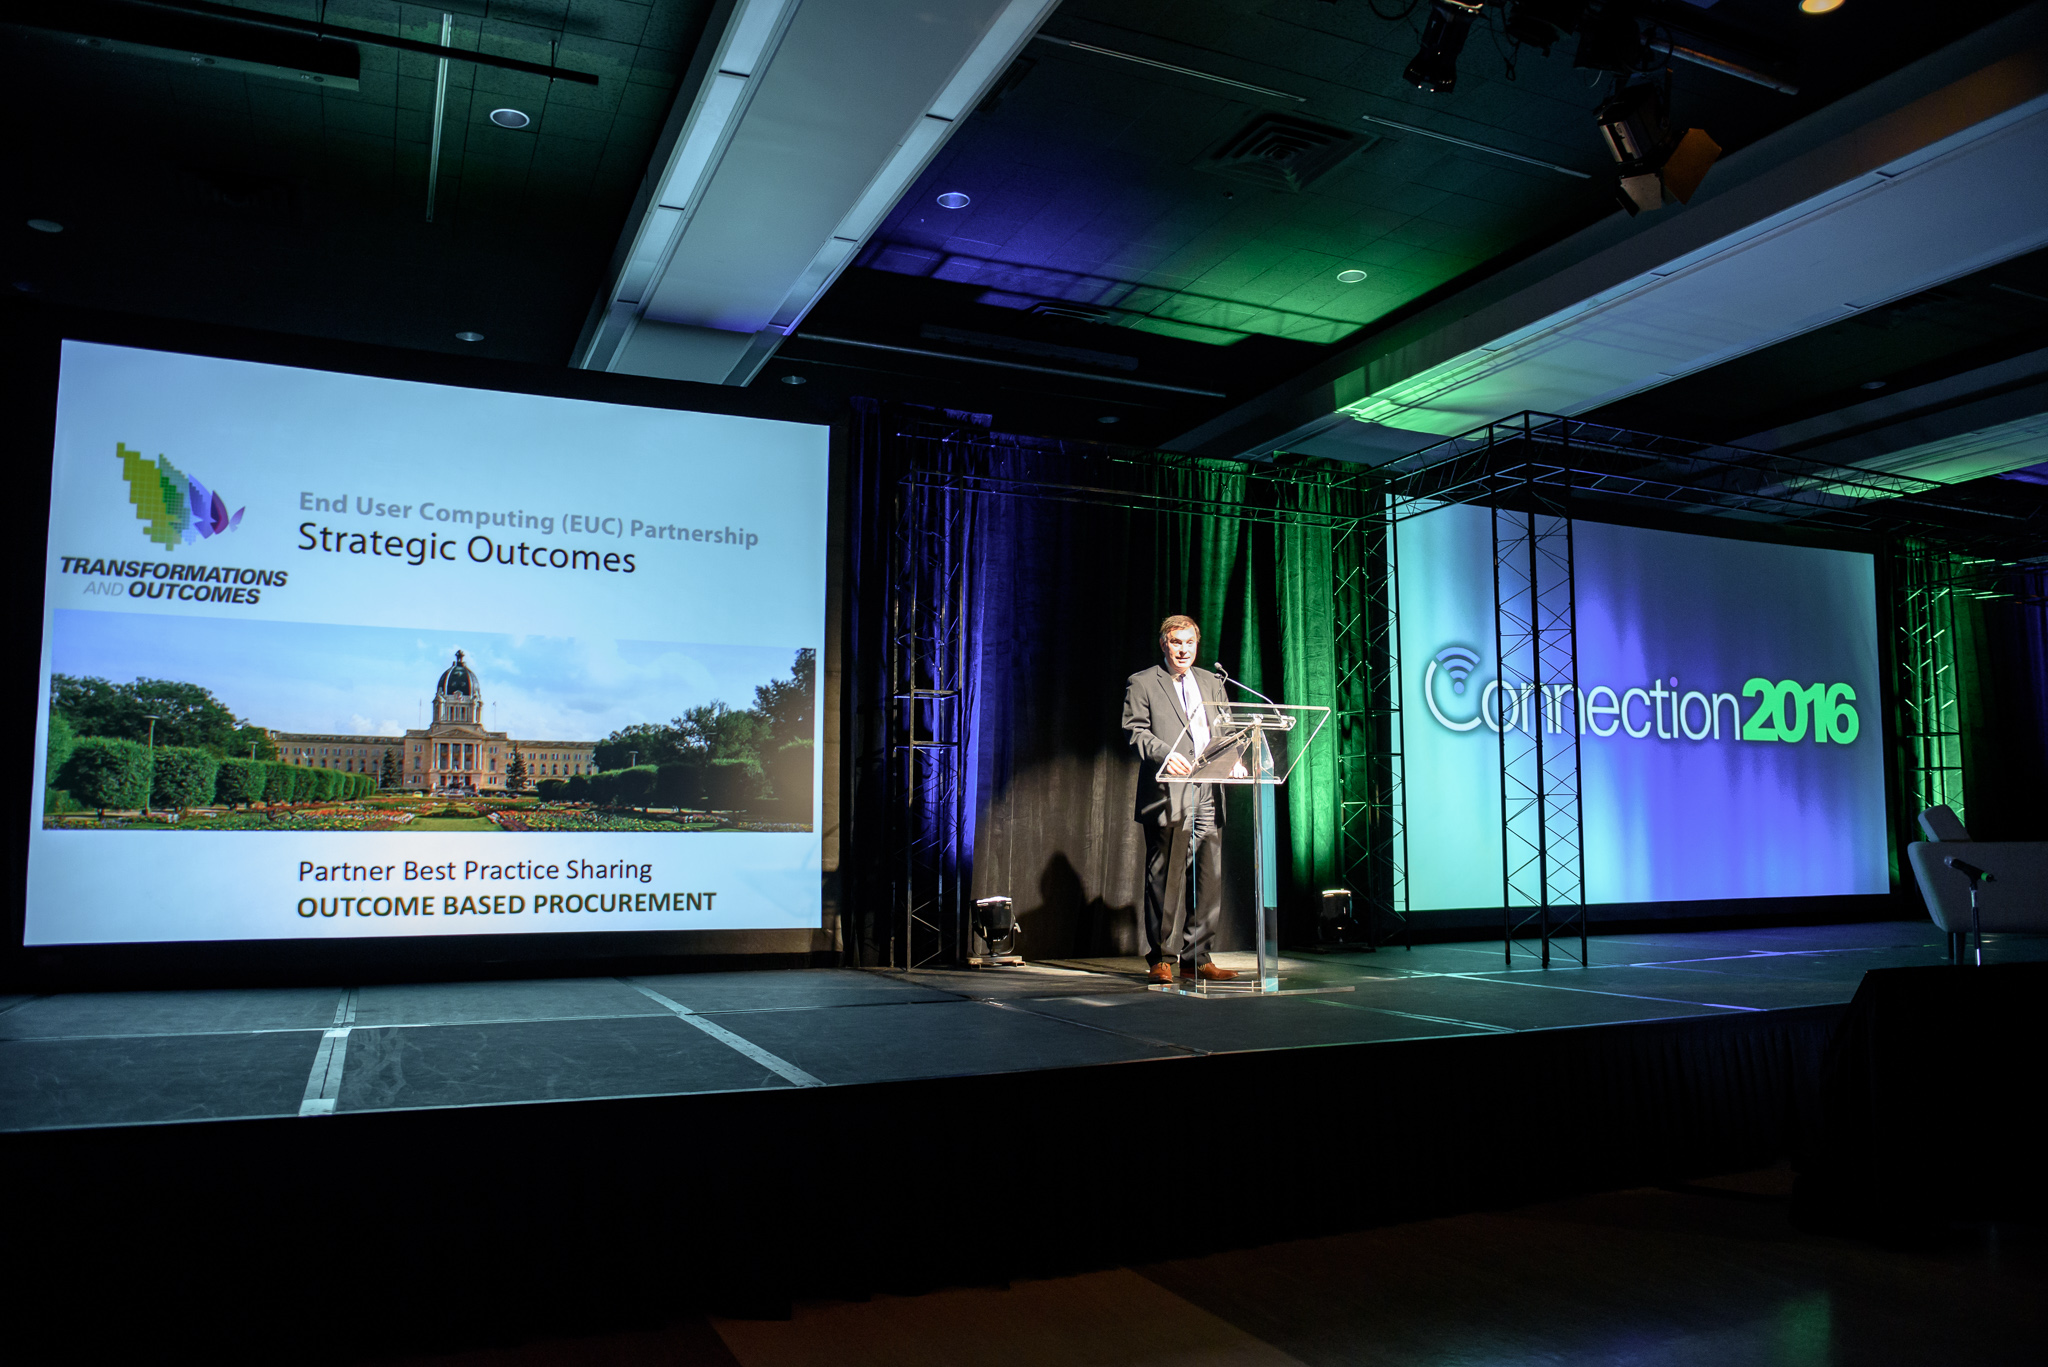 Gord Wyant, Province of Saskatchewan Attorney General, Minister of Justice, and Minister Responsible for the Saskatchewan Power Corporation introduces a session on the outcomes being generated by transforming procurement at WBM's Connection 2016.